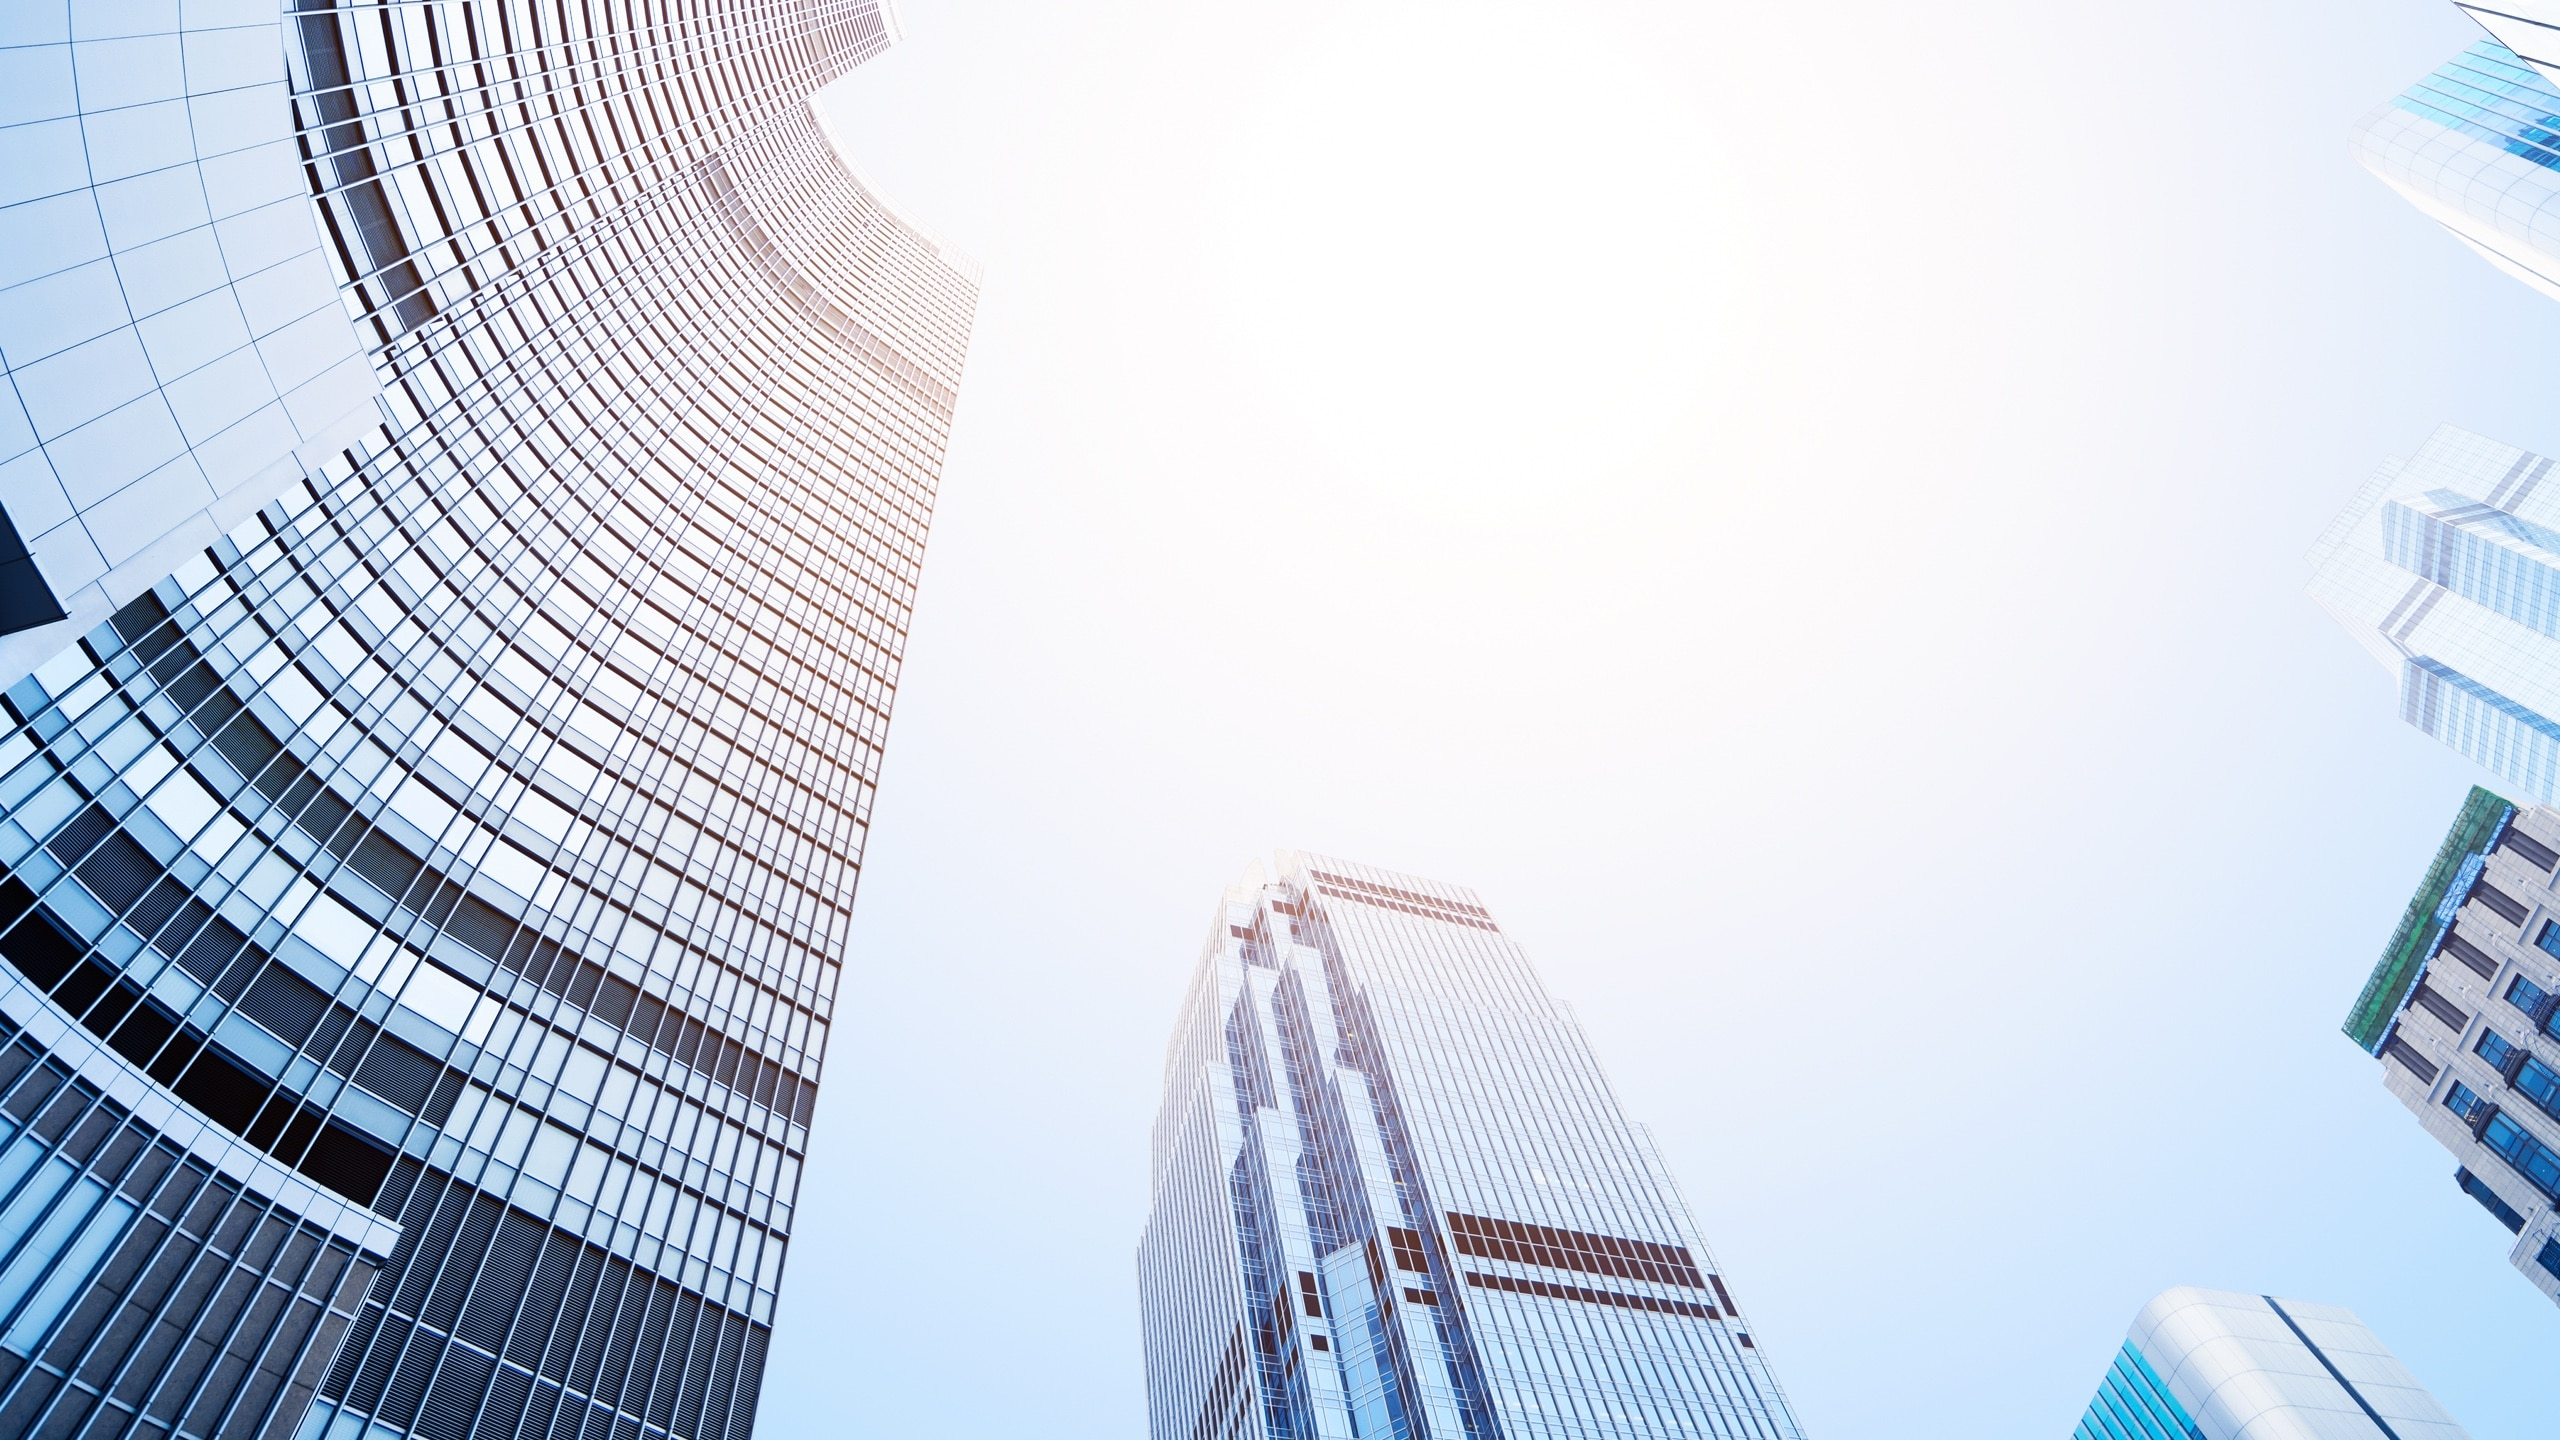 View looking up in the center of multiple tall buildings.